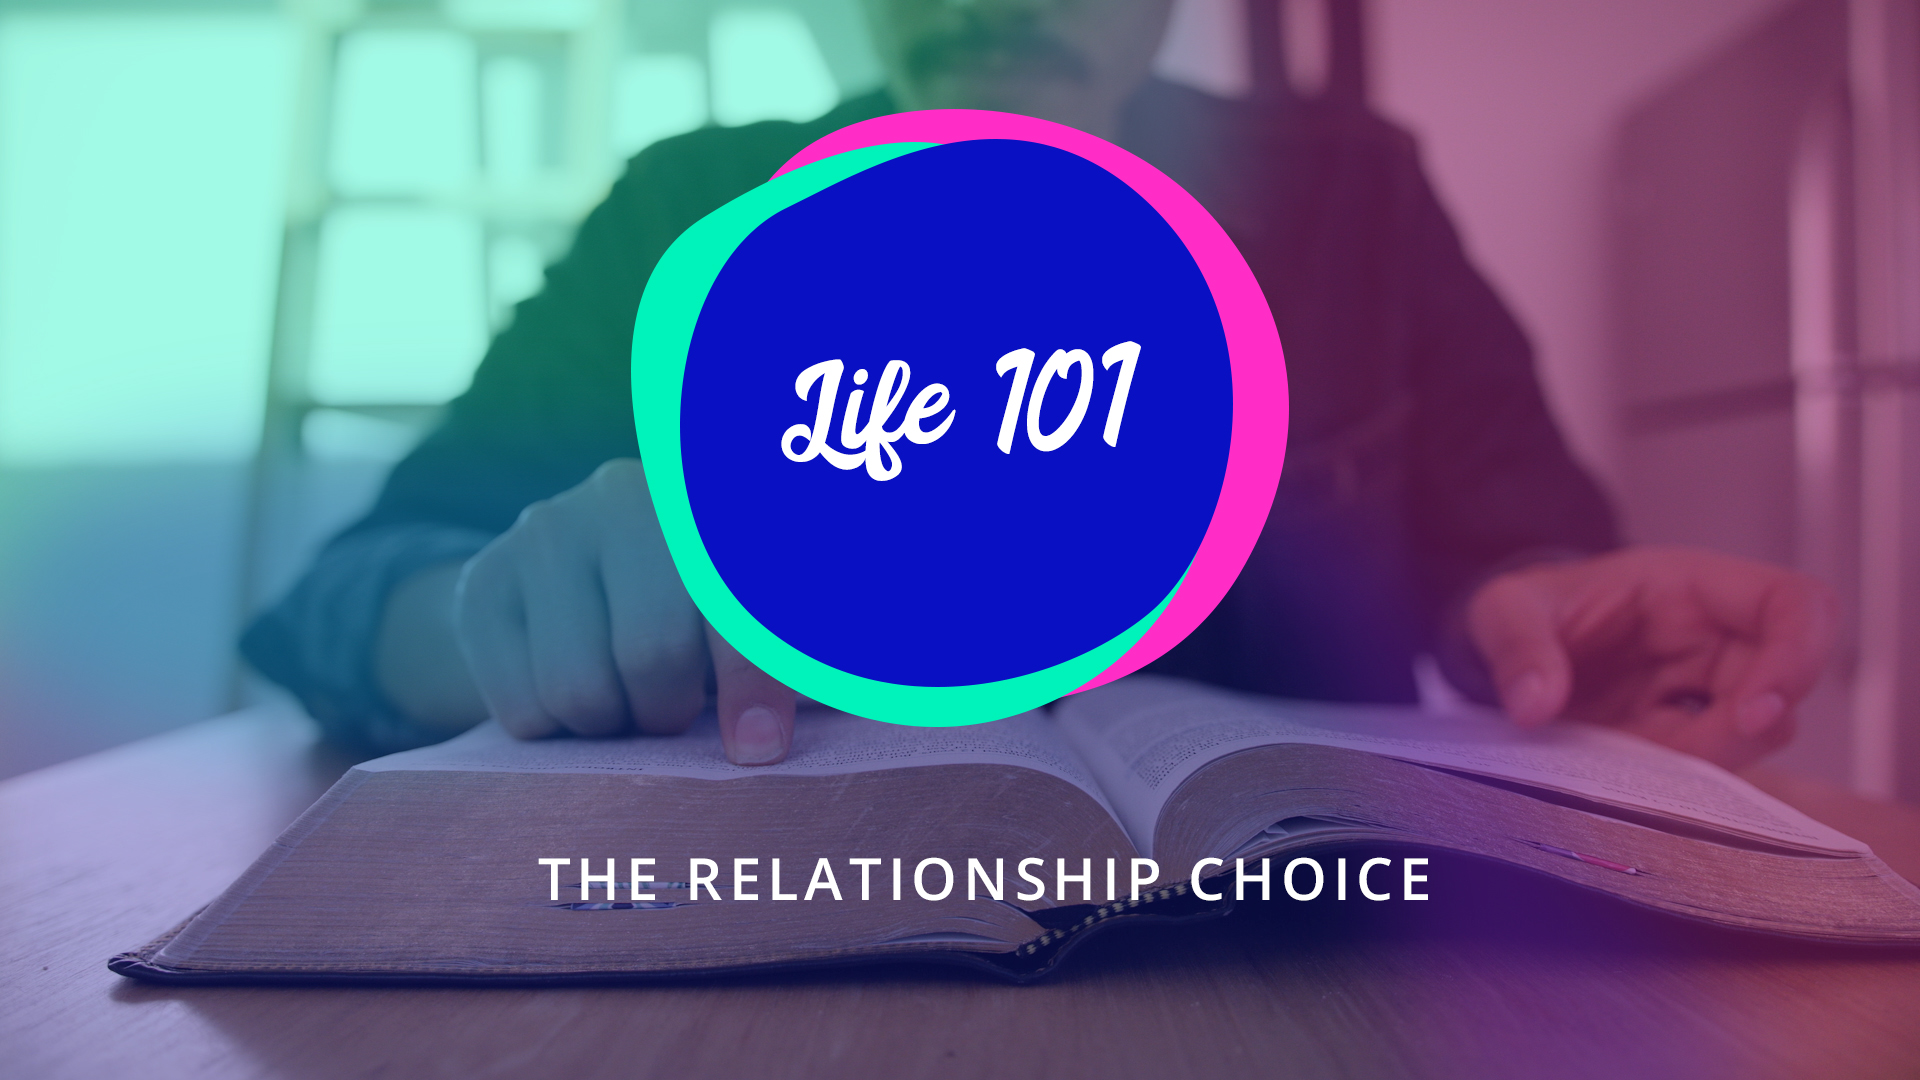 5 | The Relationship Choice